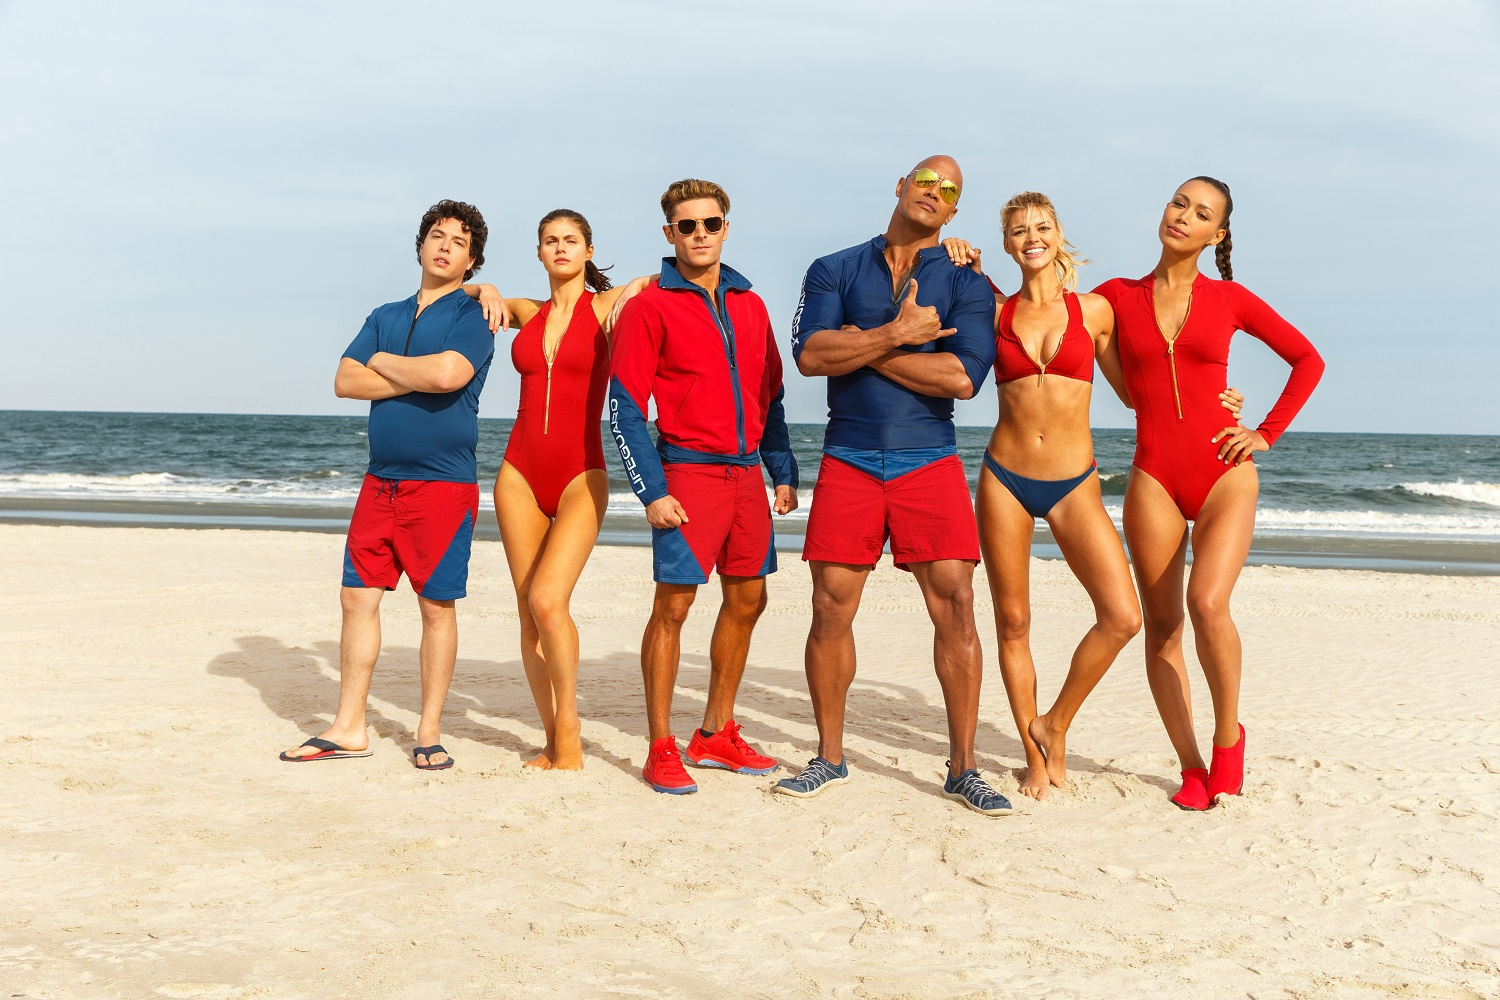 baywatch_2017.jpg?fit=1500%2C1000&ssl=1